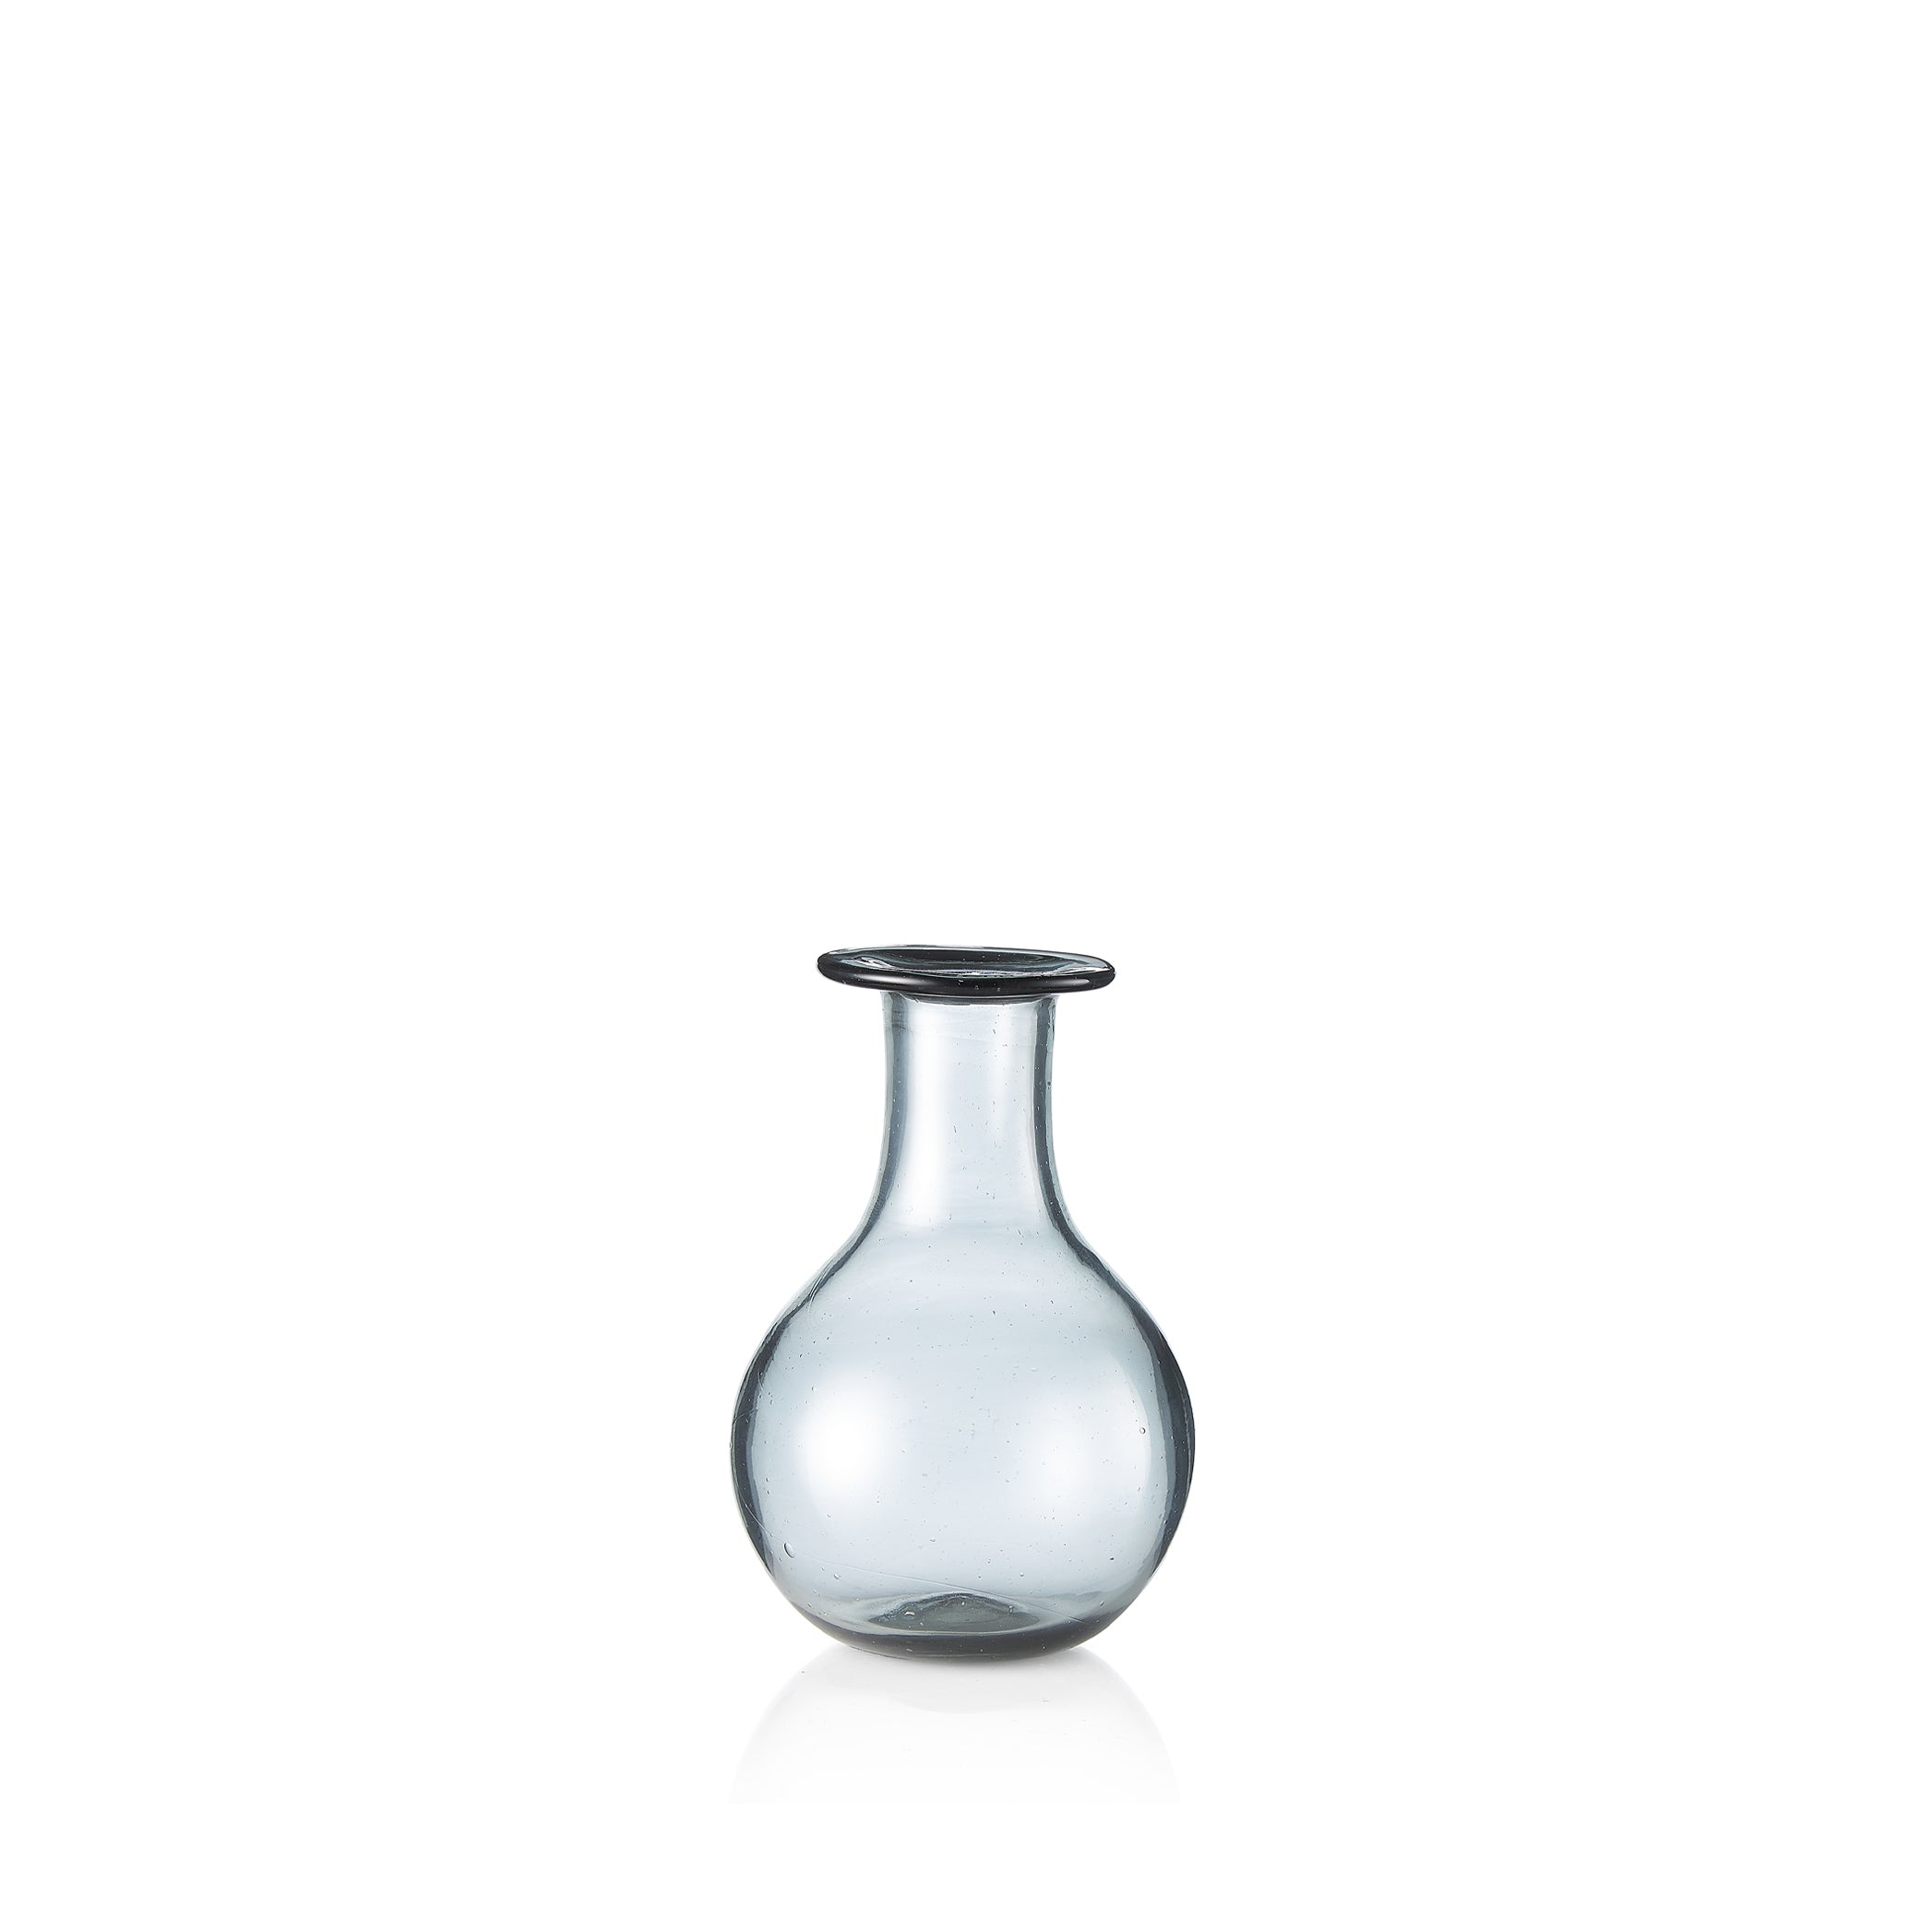 Handblown Small Round Bud Vase in Smokey Grey